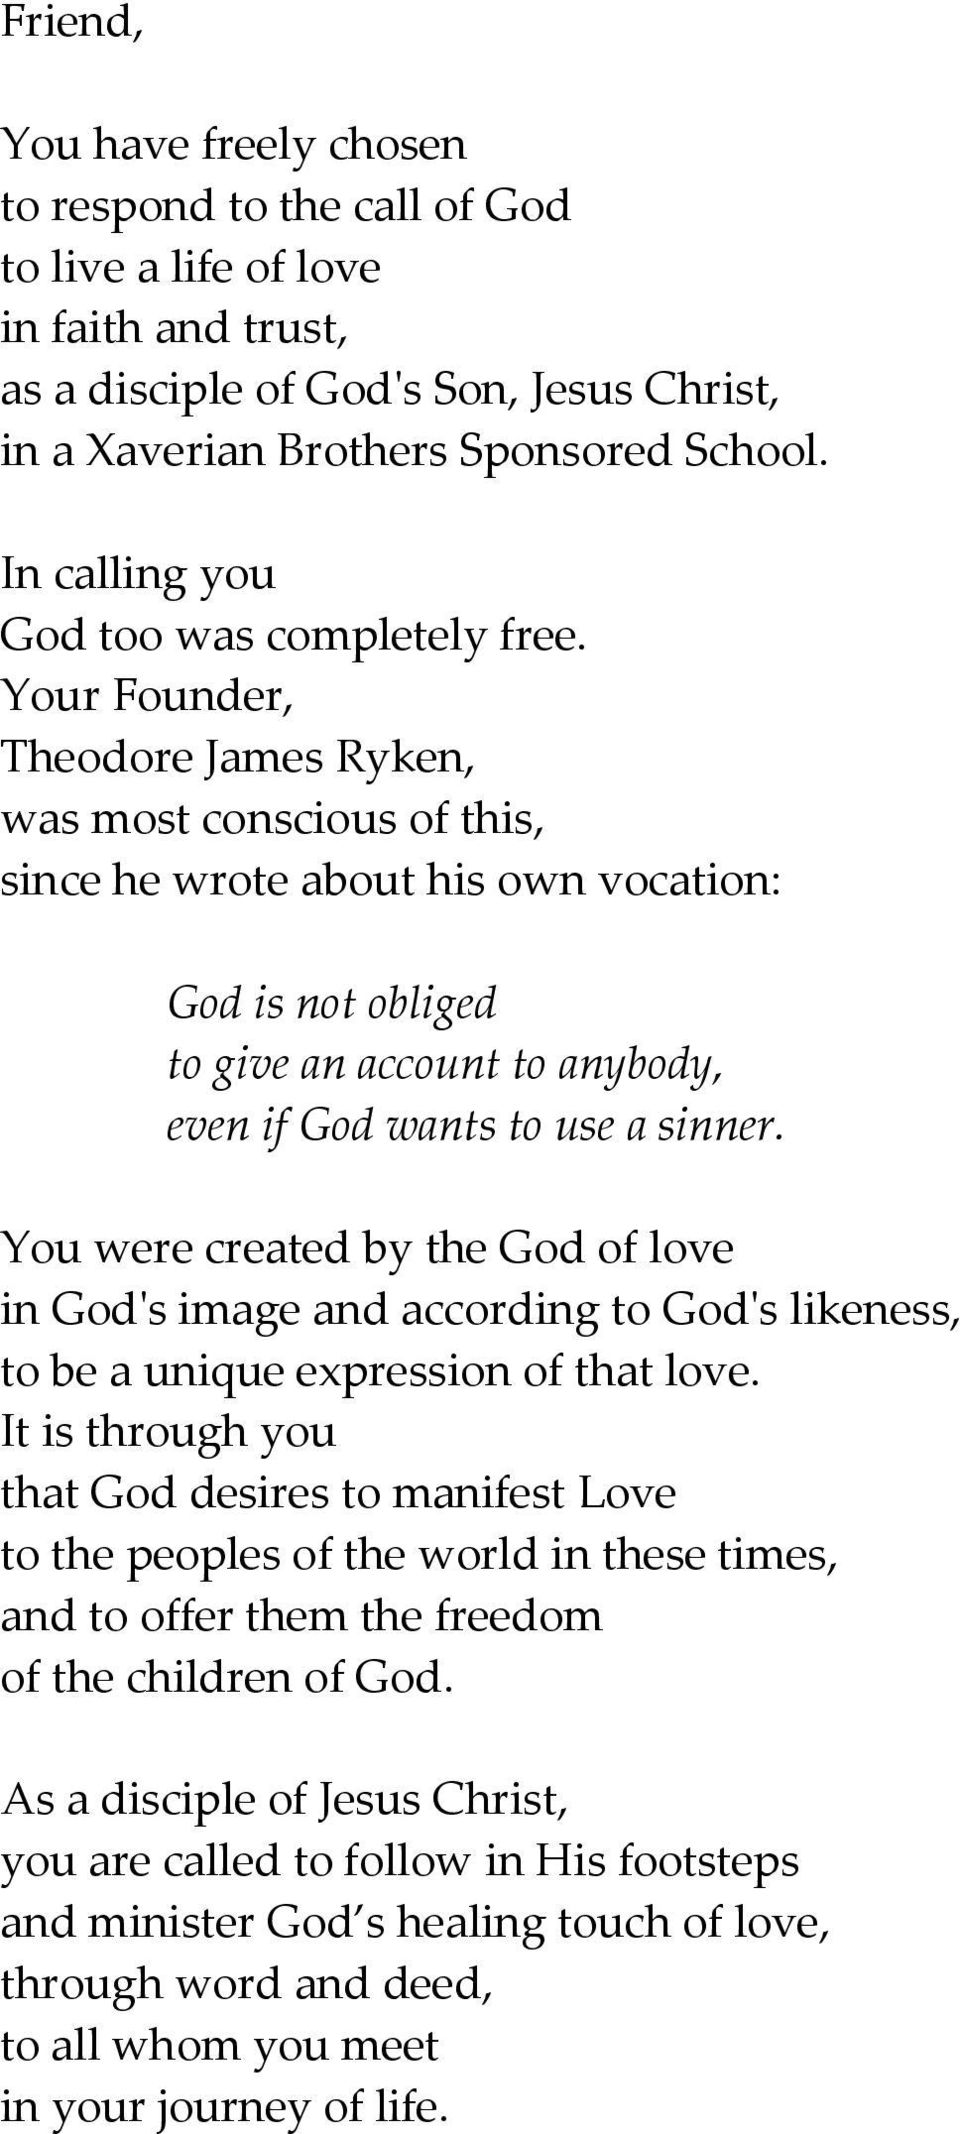 Your Founder, Theodore James Ryken, was most conscious of this, since he wrote about his own vocation: God is not obliged to give an account to anybody, even if God wants to use a sinner.